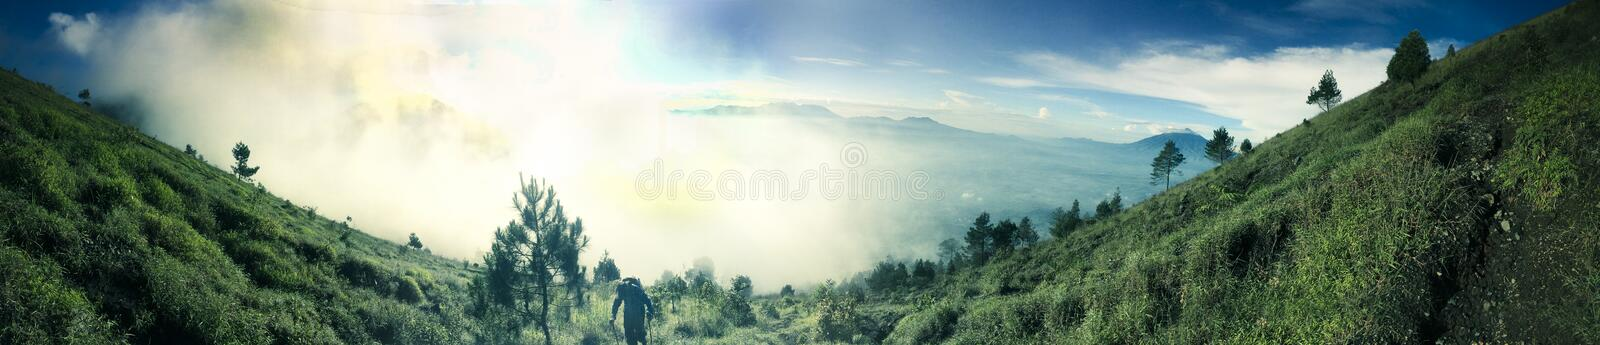 Mount Guntur sunrise. Mount Guntur or Gunung Guntur is an active stratovolcano in western Java. It is part of a complex of several overlapping stratovolcanoes stock photos